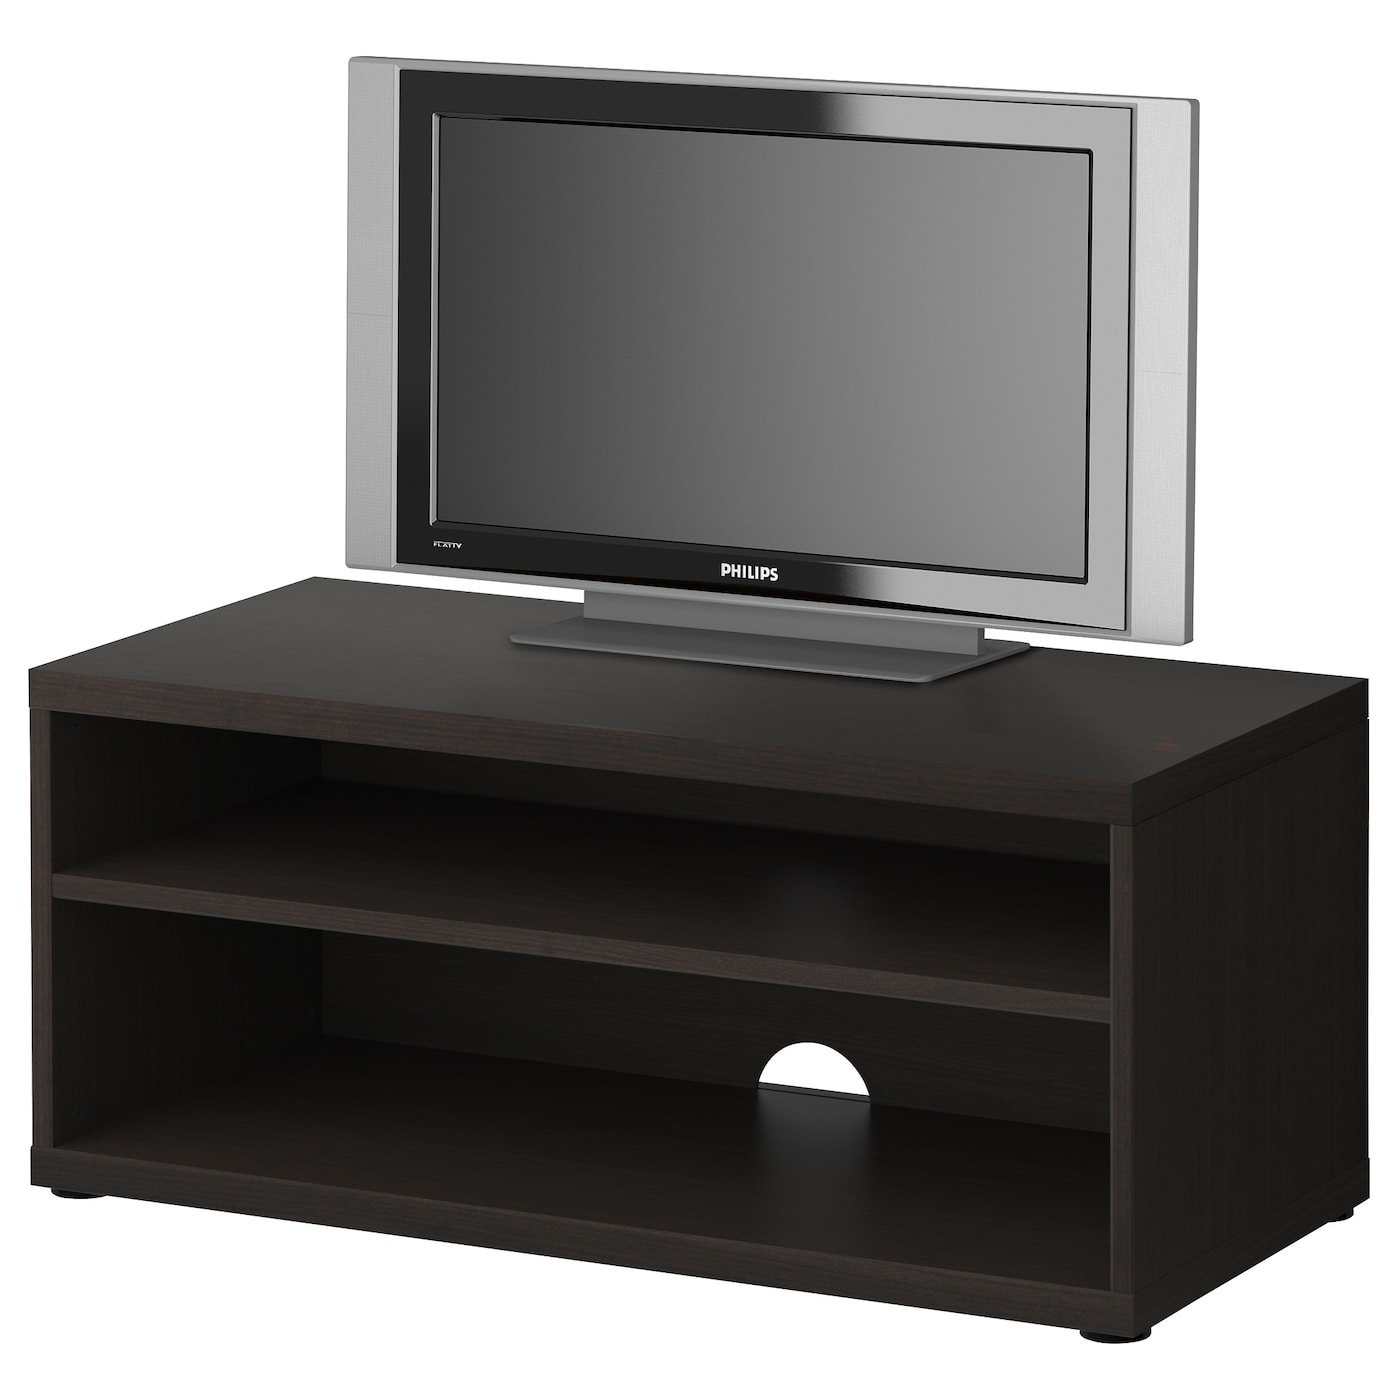 tv stand ikea black. ikea mosjÖ tv bench 1 adjustable shelf; adjust spacing according to your own needs. tv stand ikea black k